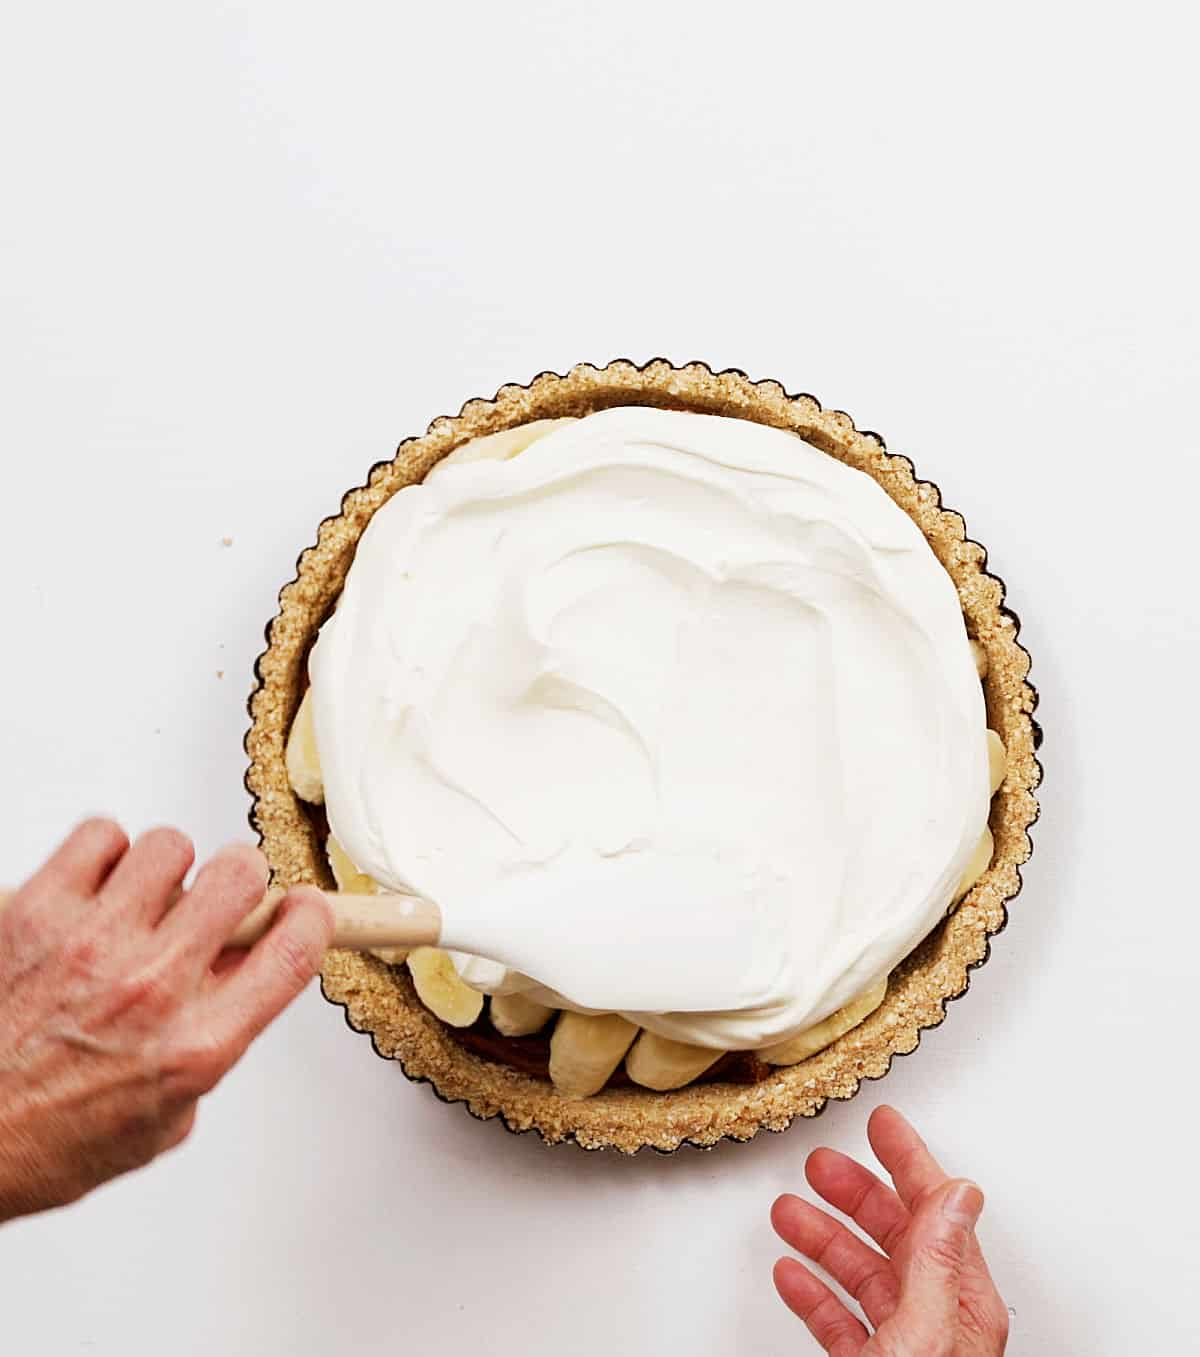 Overview of hands spreading whipped cream on pie, white surface